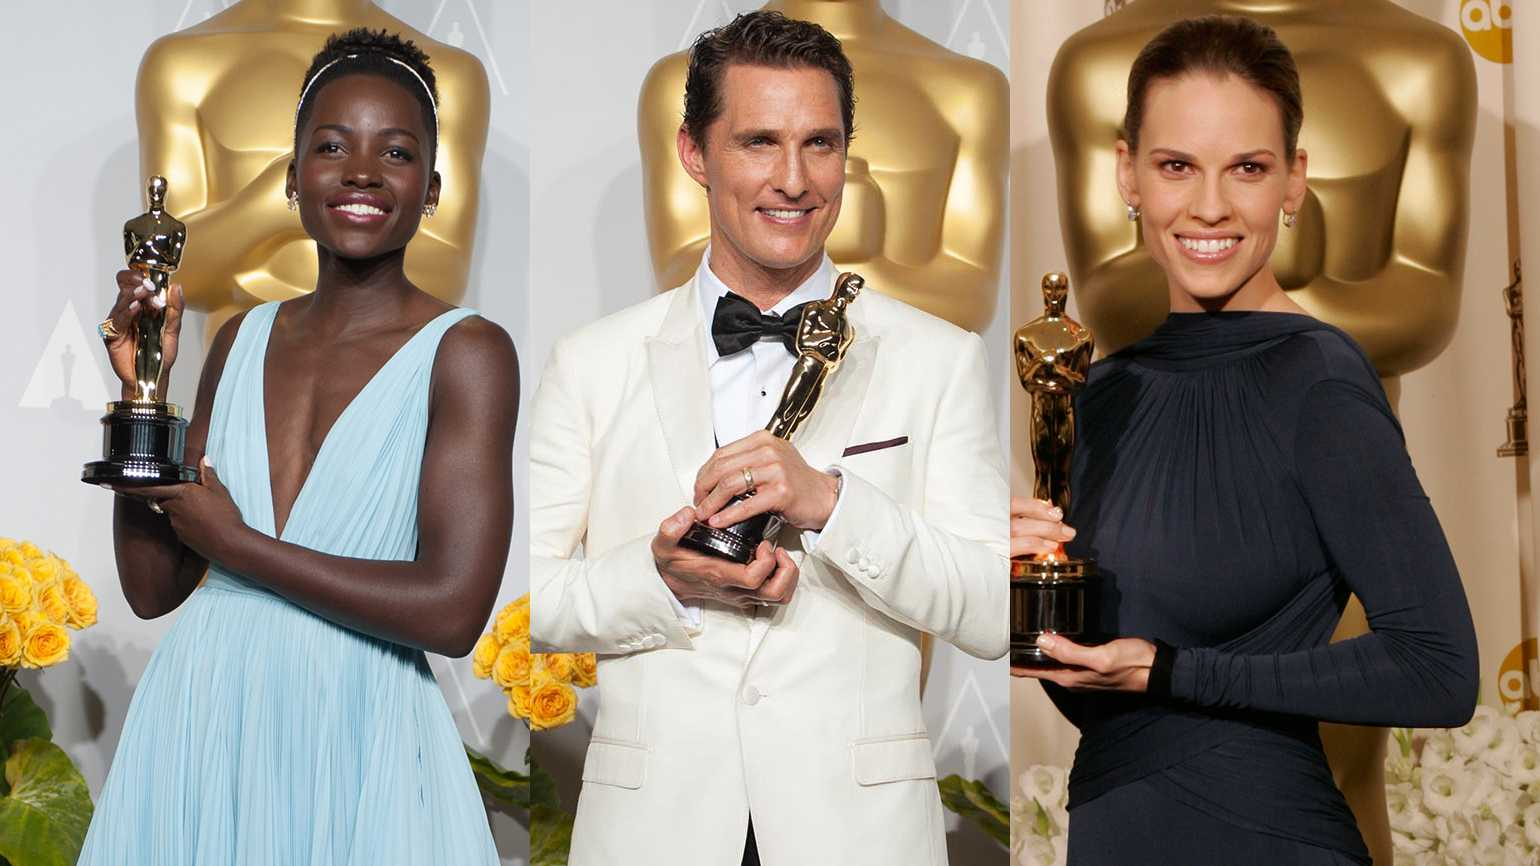 5 Most Inspiring Oscar Speeches of All Time Inspiration entertainment